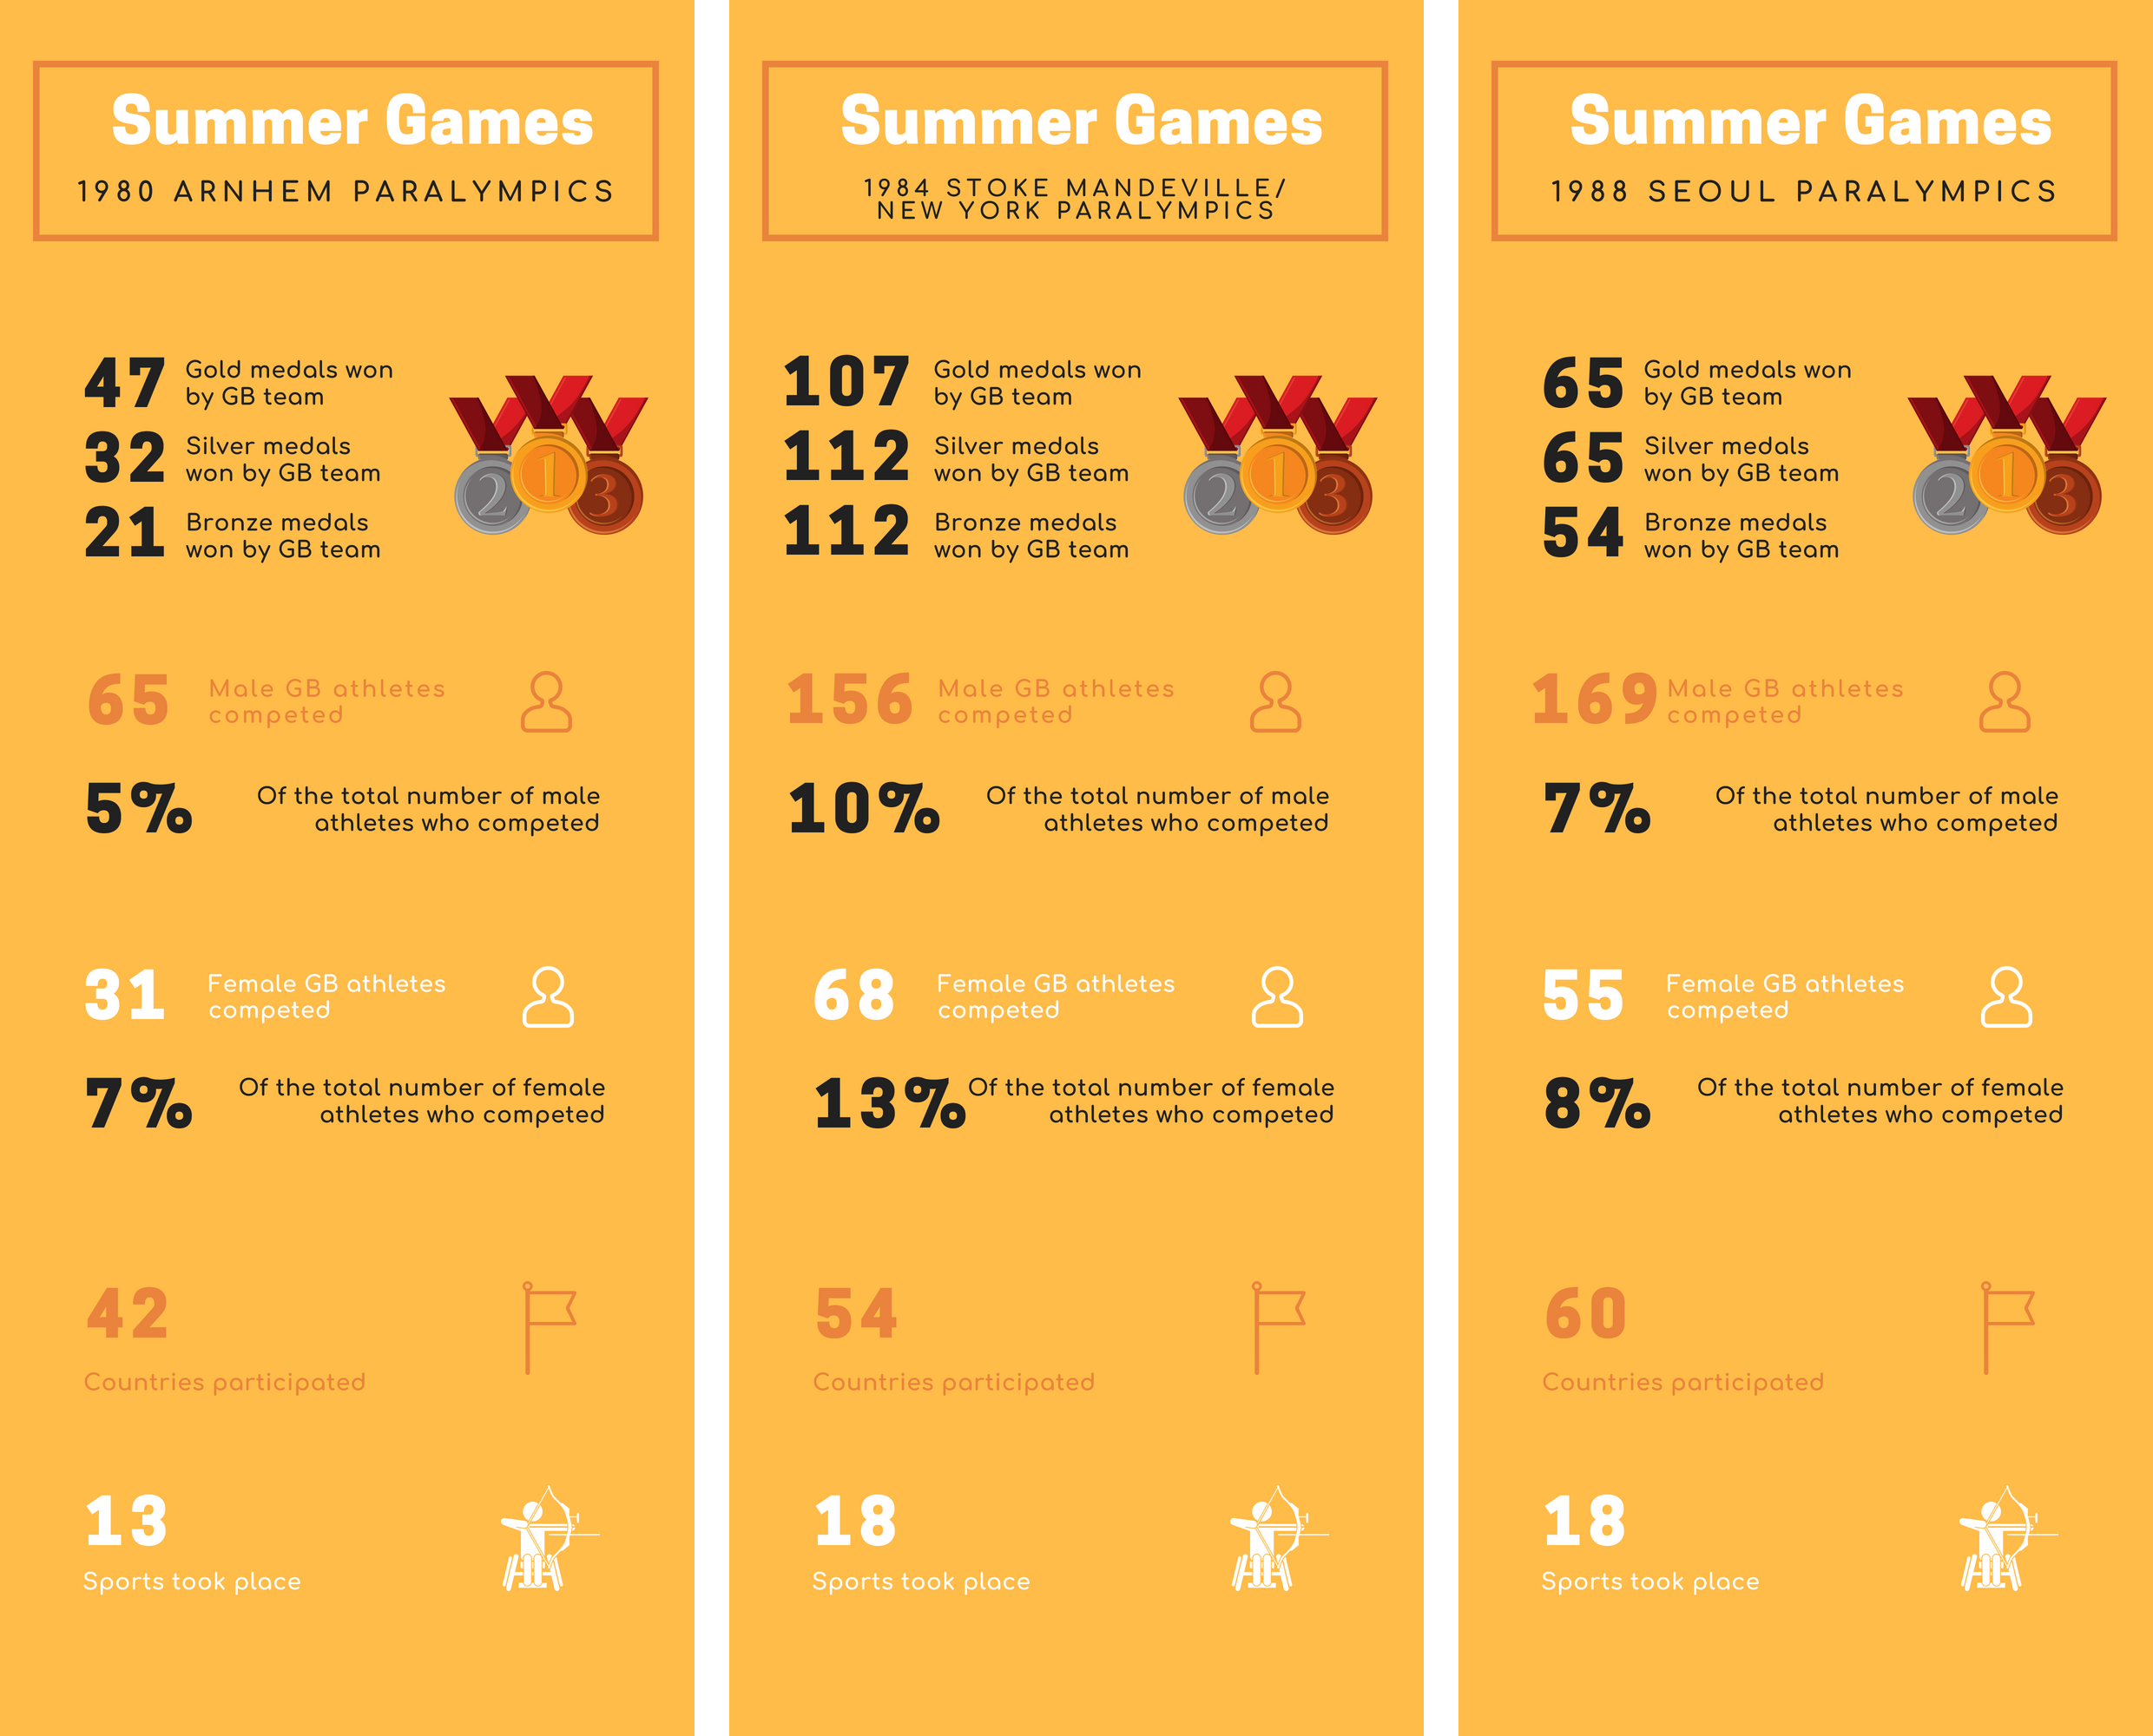 Infographic of the statistics for the 1980s Summer Paralympic Games